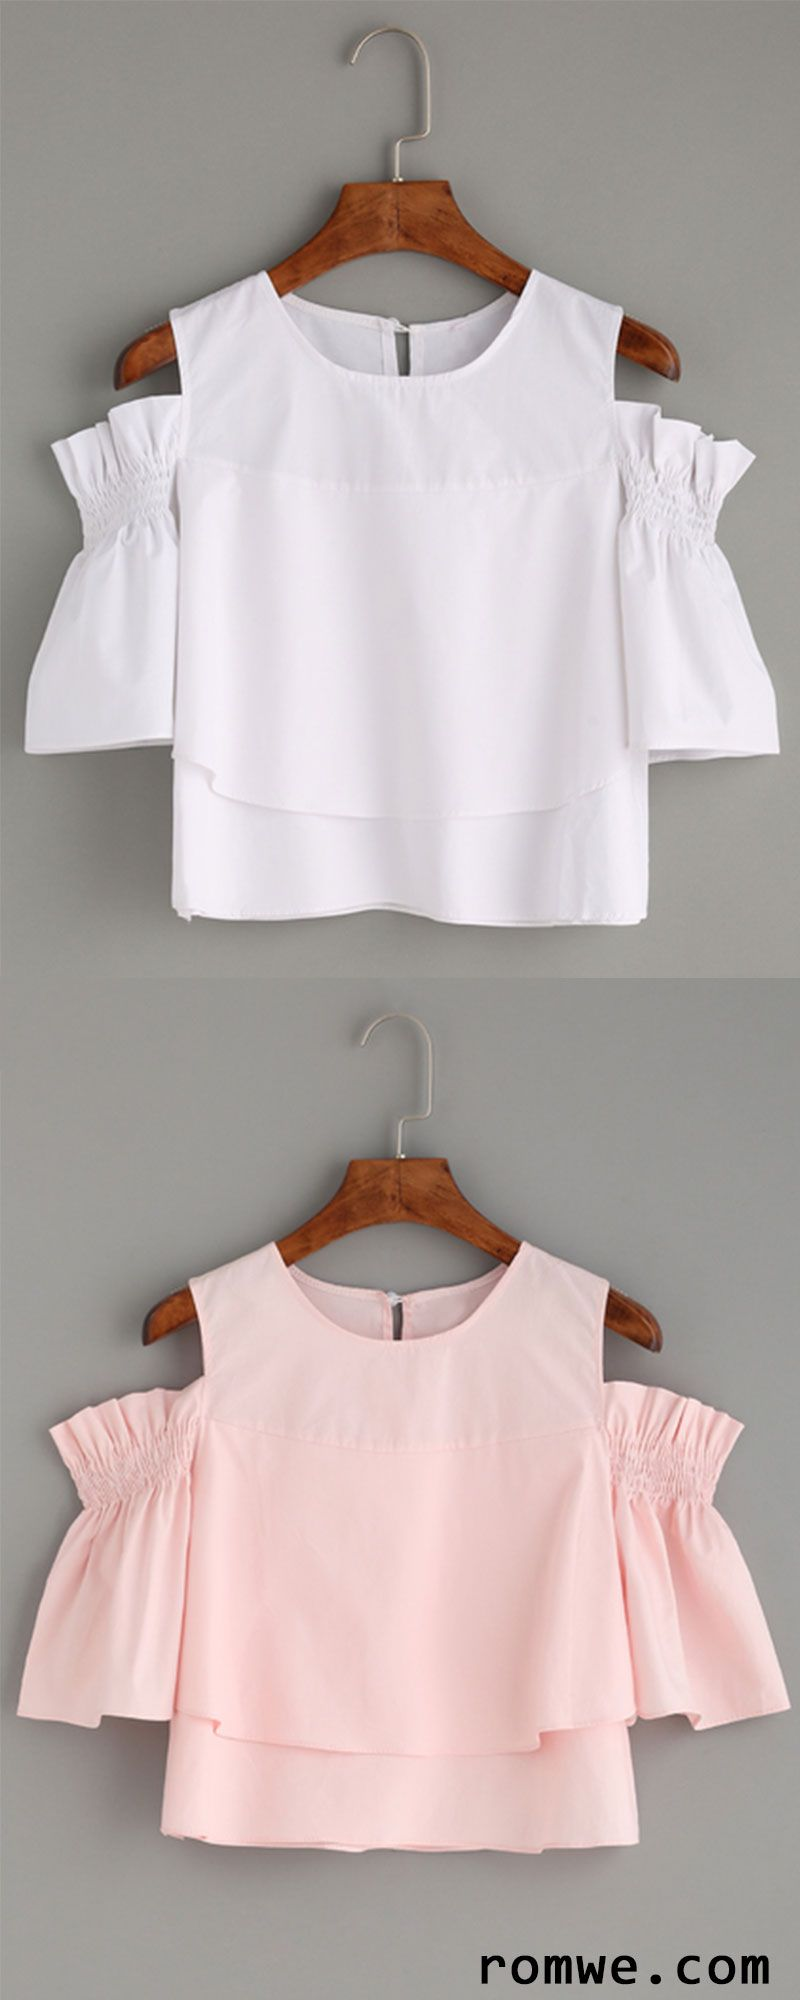 Cute Top - Ruffled Open Shoulder Blouse 2ed47e5668d